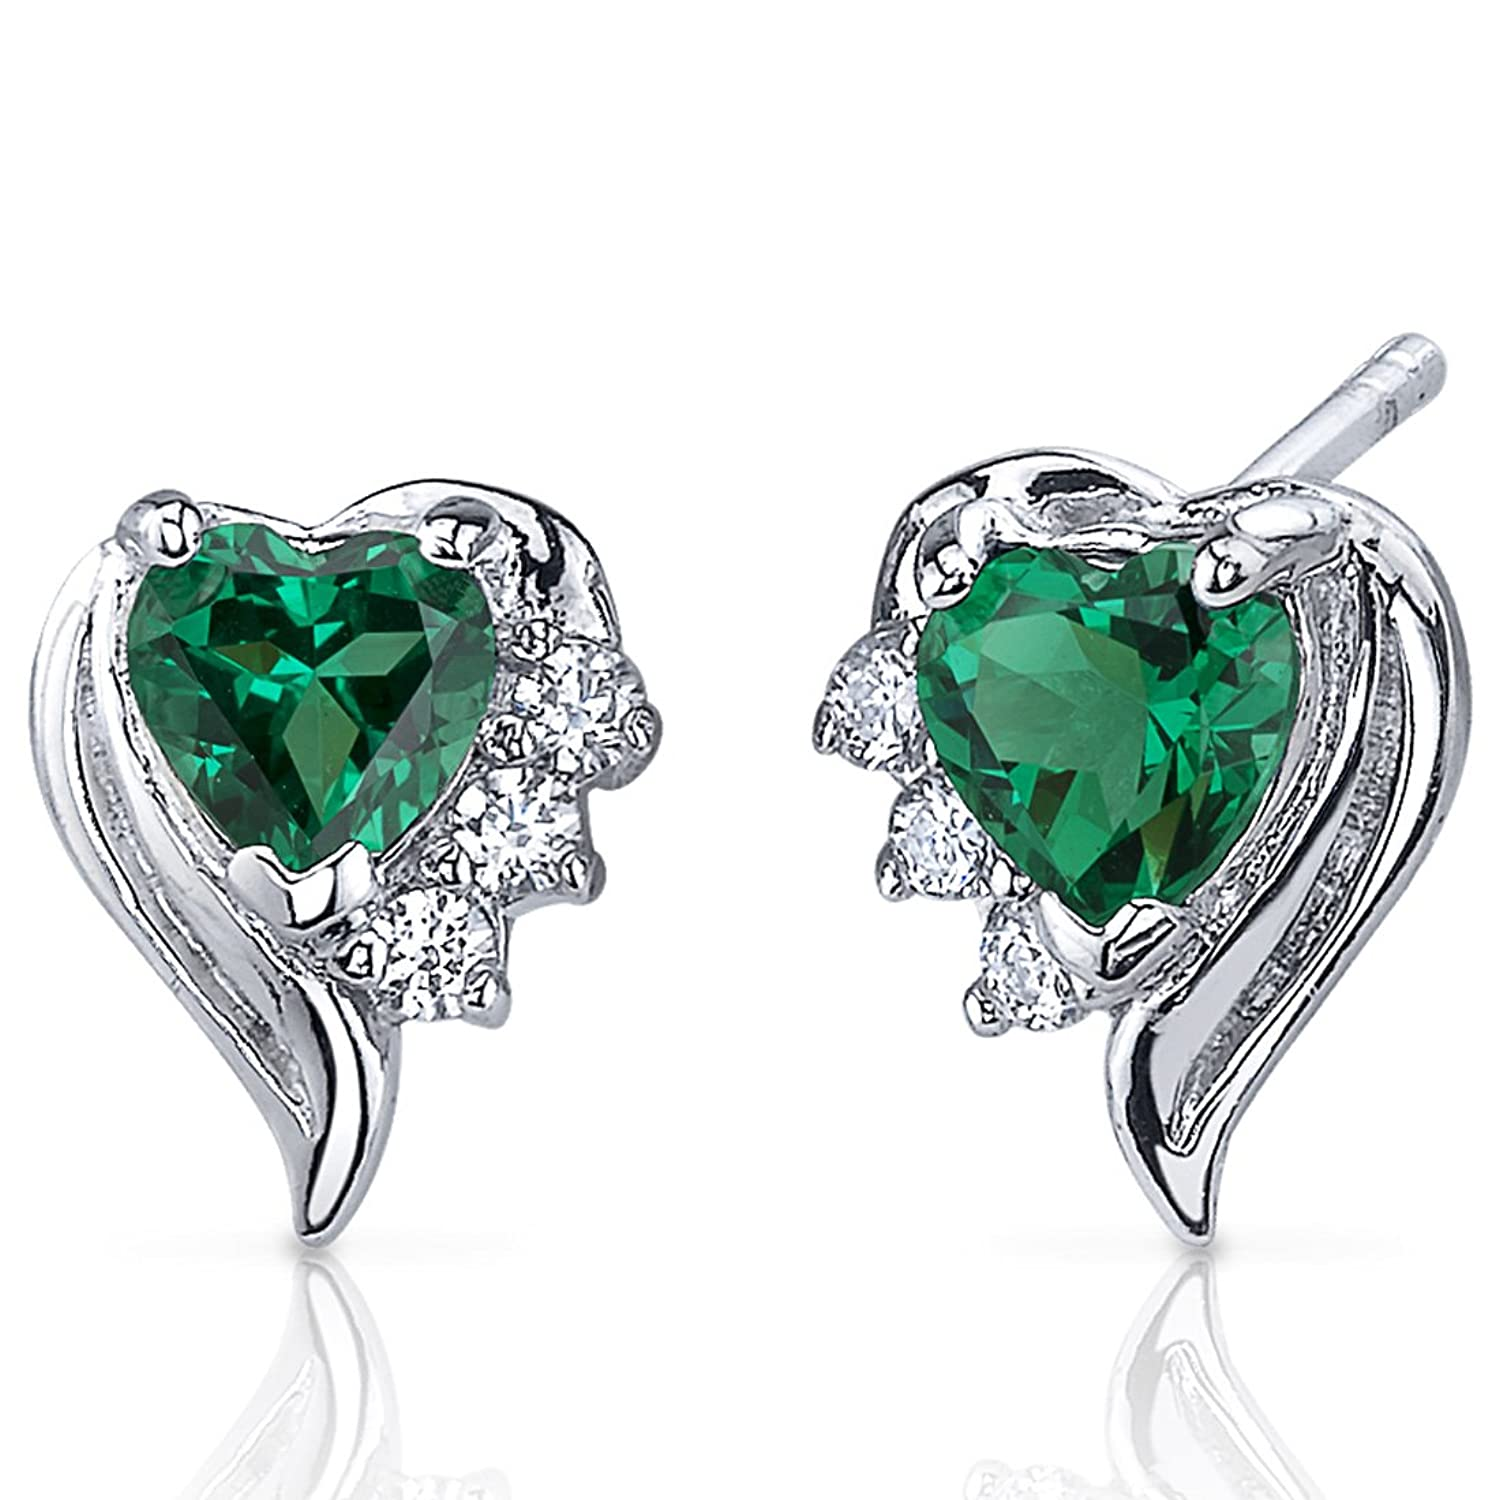 1.00 Carats Simulated Emerald Heart Shape Earrings Sterling Silver Rhodium Nickel Finish